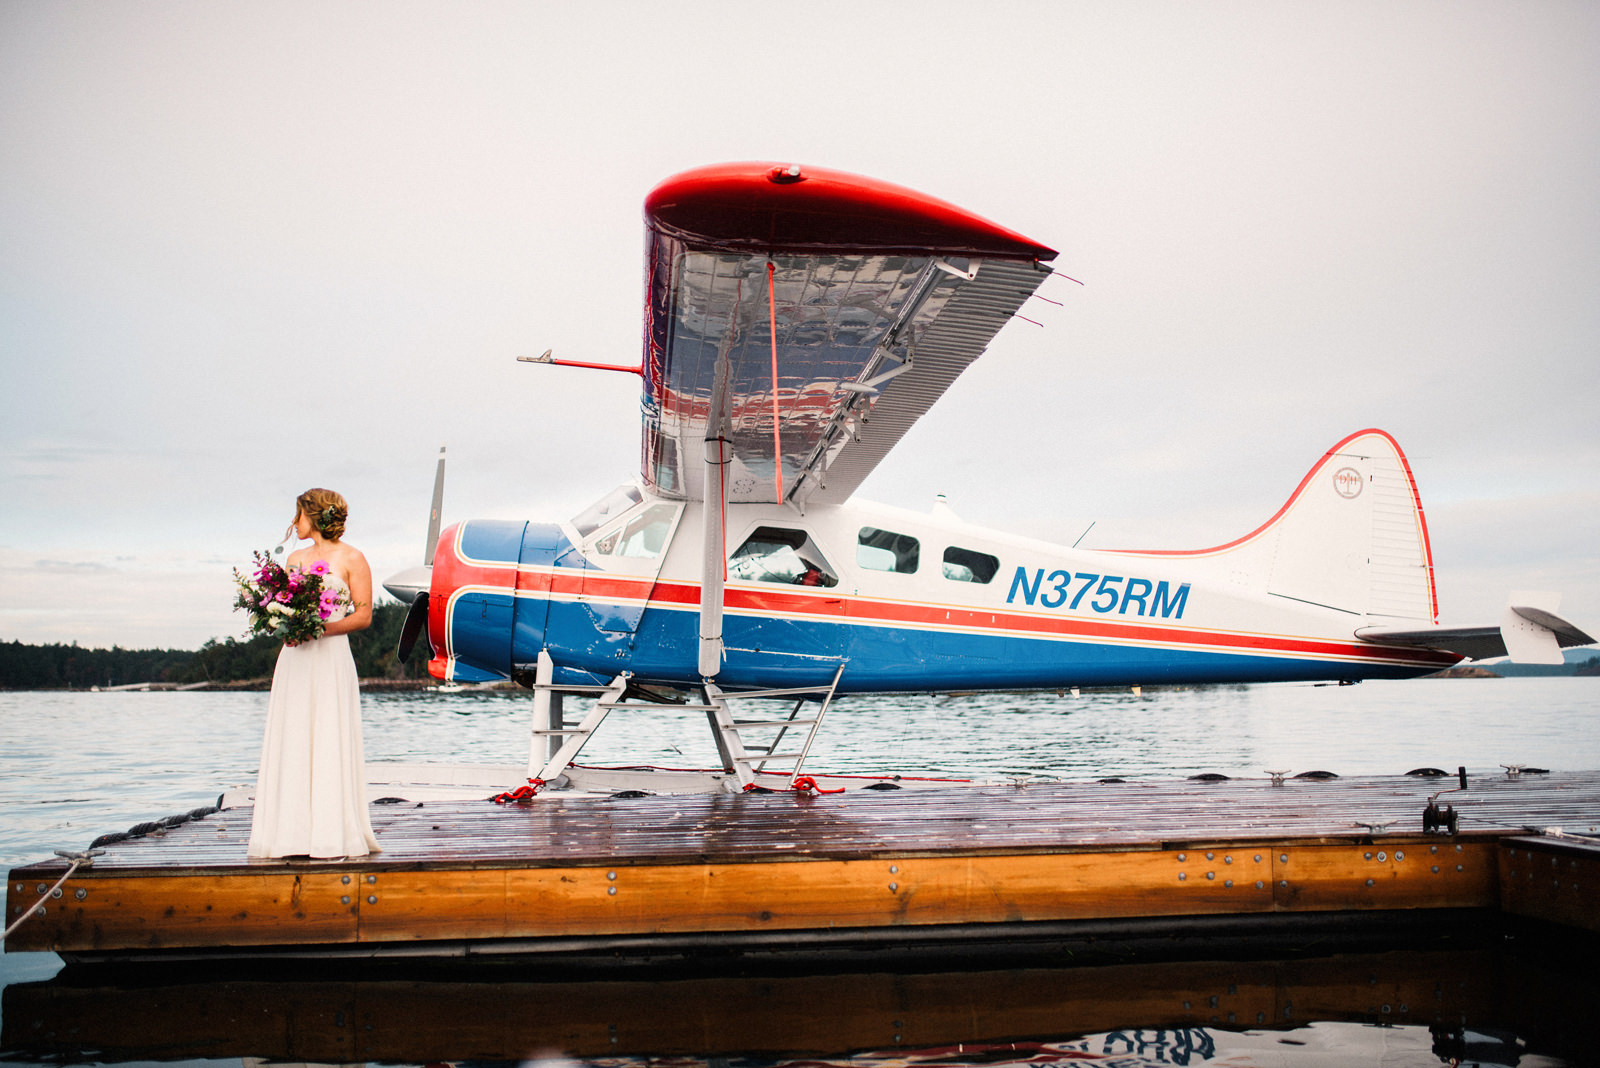 085-roche-harbor-wedding-with-bride-and-seaplane-in-the-san-juan-islands.jpg